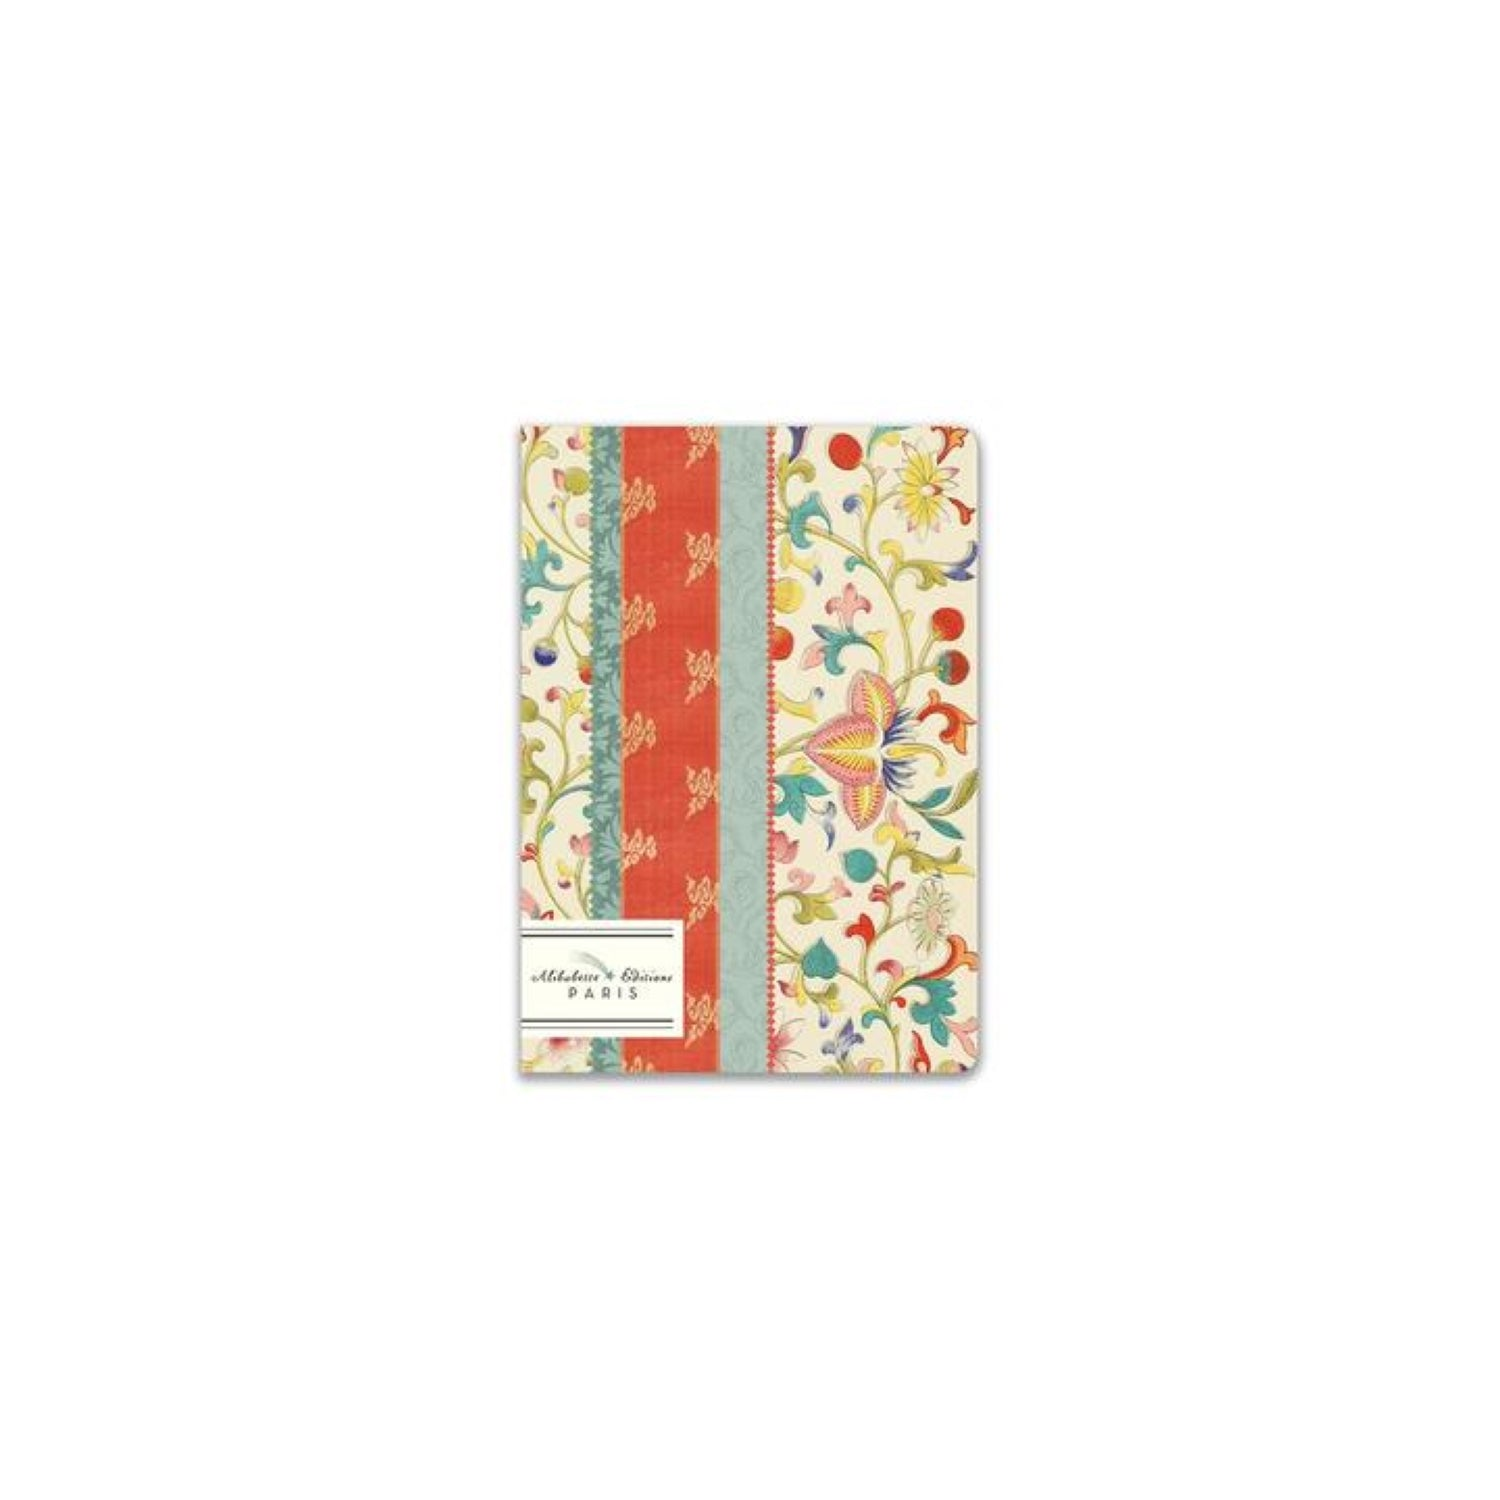 Alibabette Editions Notebook A6 Lined - Petit Canton